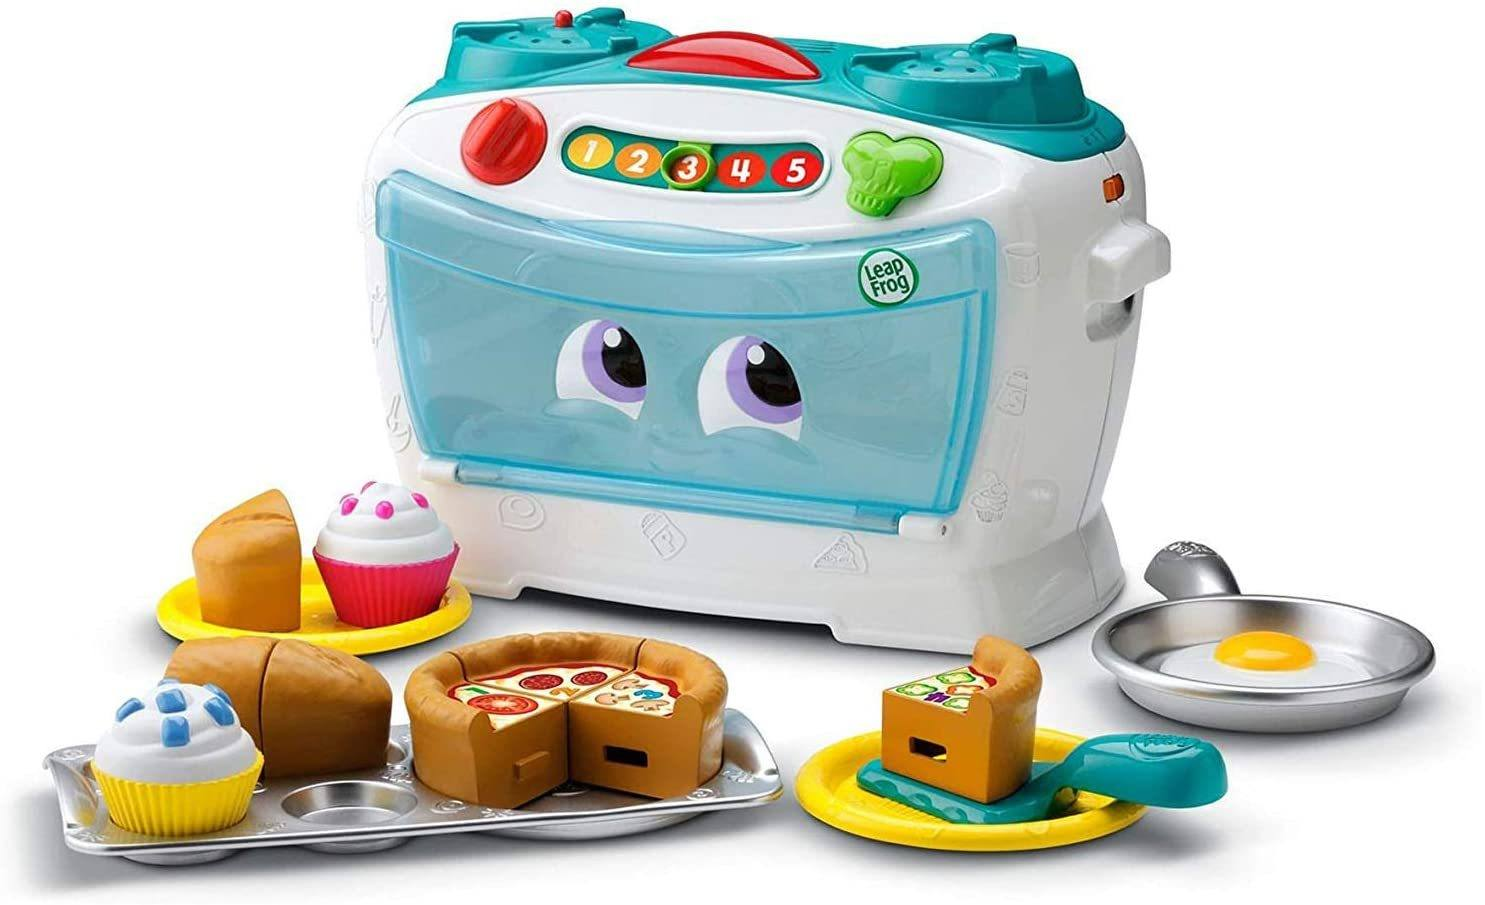 Leap Frog Number Lovin' Oven, Teal, Great Gift For Kids, Toddlers, Toy for Boys and Girls, Ages 2, 3, 4, 5 - TOYBOX Toy Shop